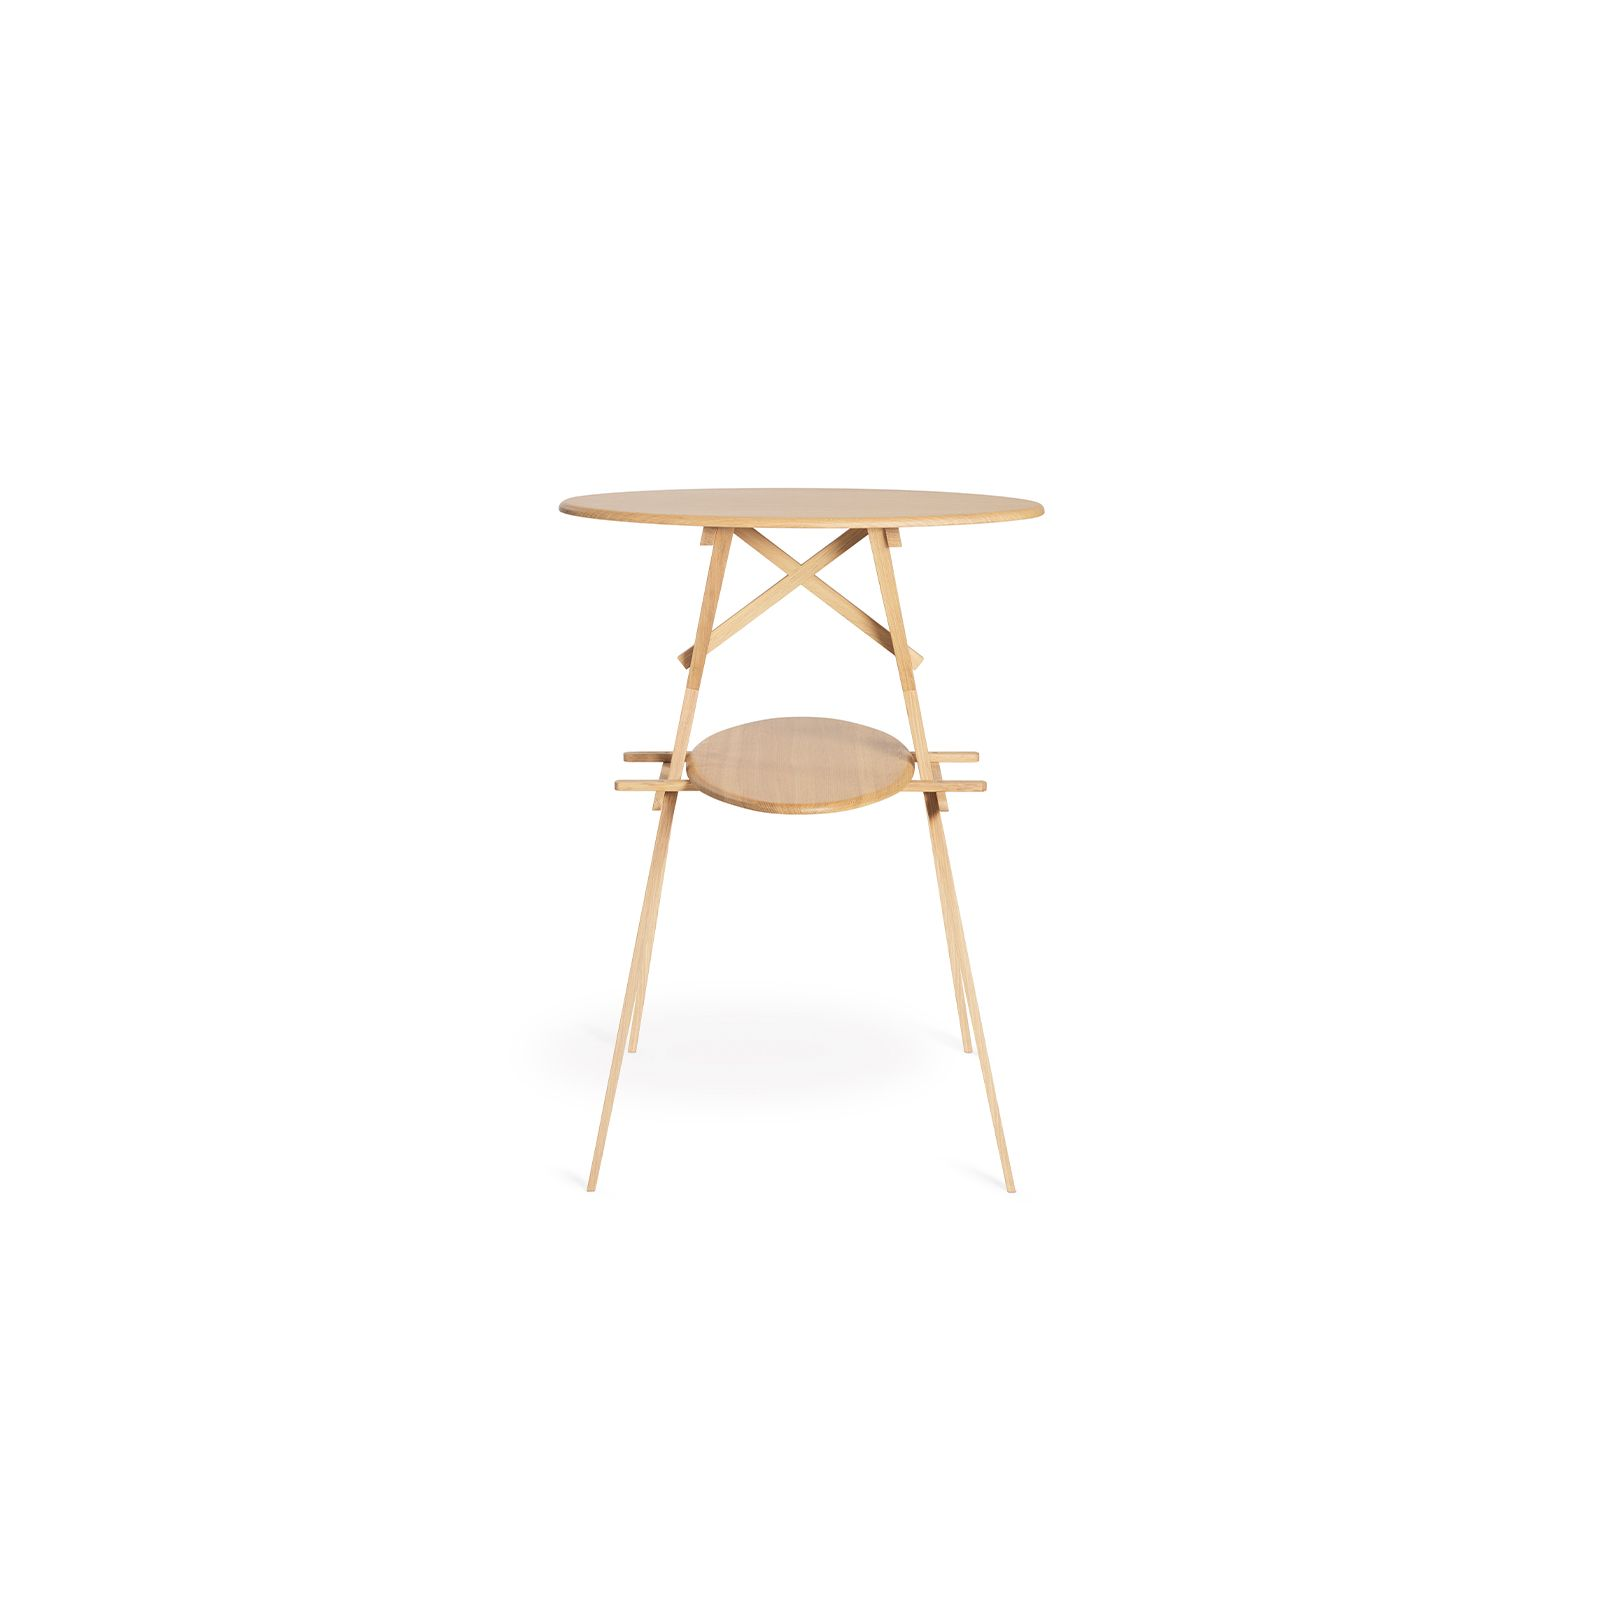 JUJOL 1920 OCCASIONAL TABLE